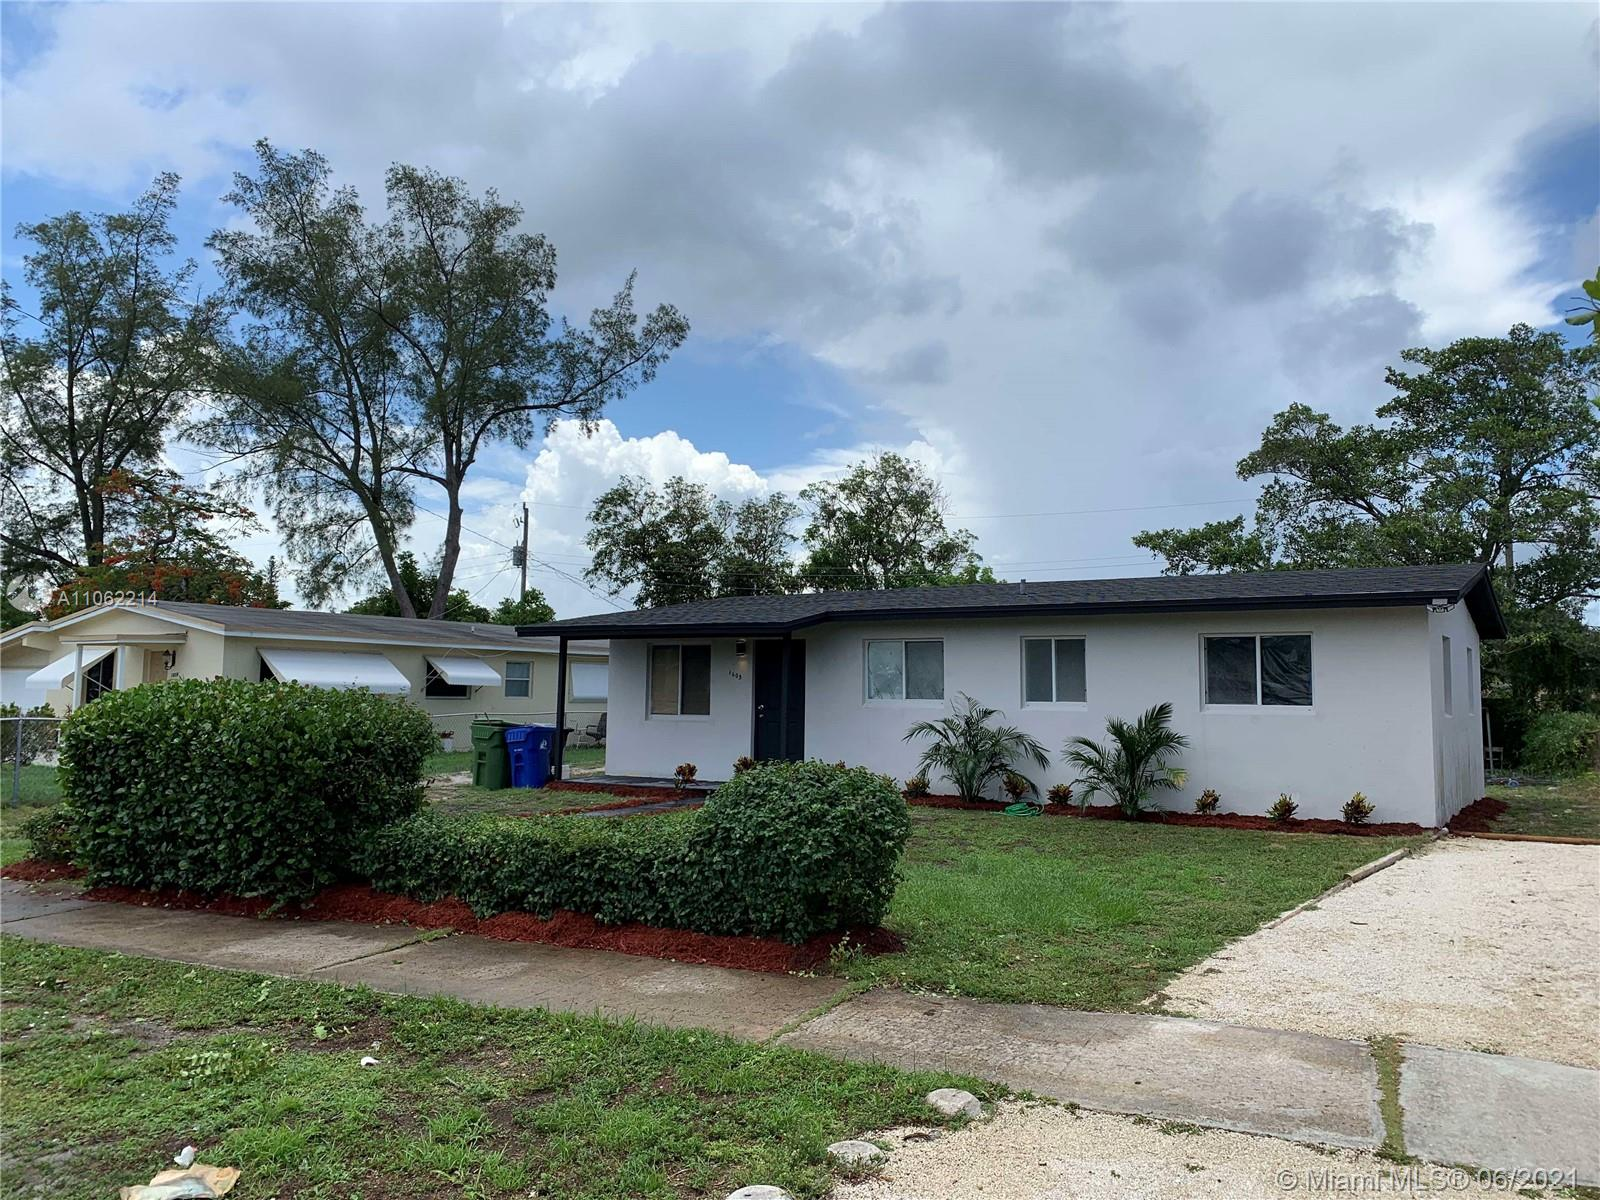 Lauderdale, 1605 NW 15th Ct, Fort Lauderdale, Florida 33311